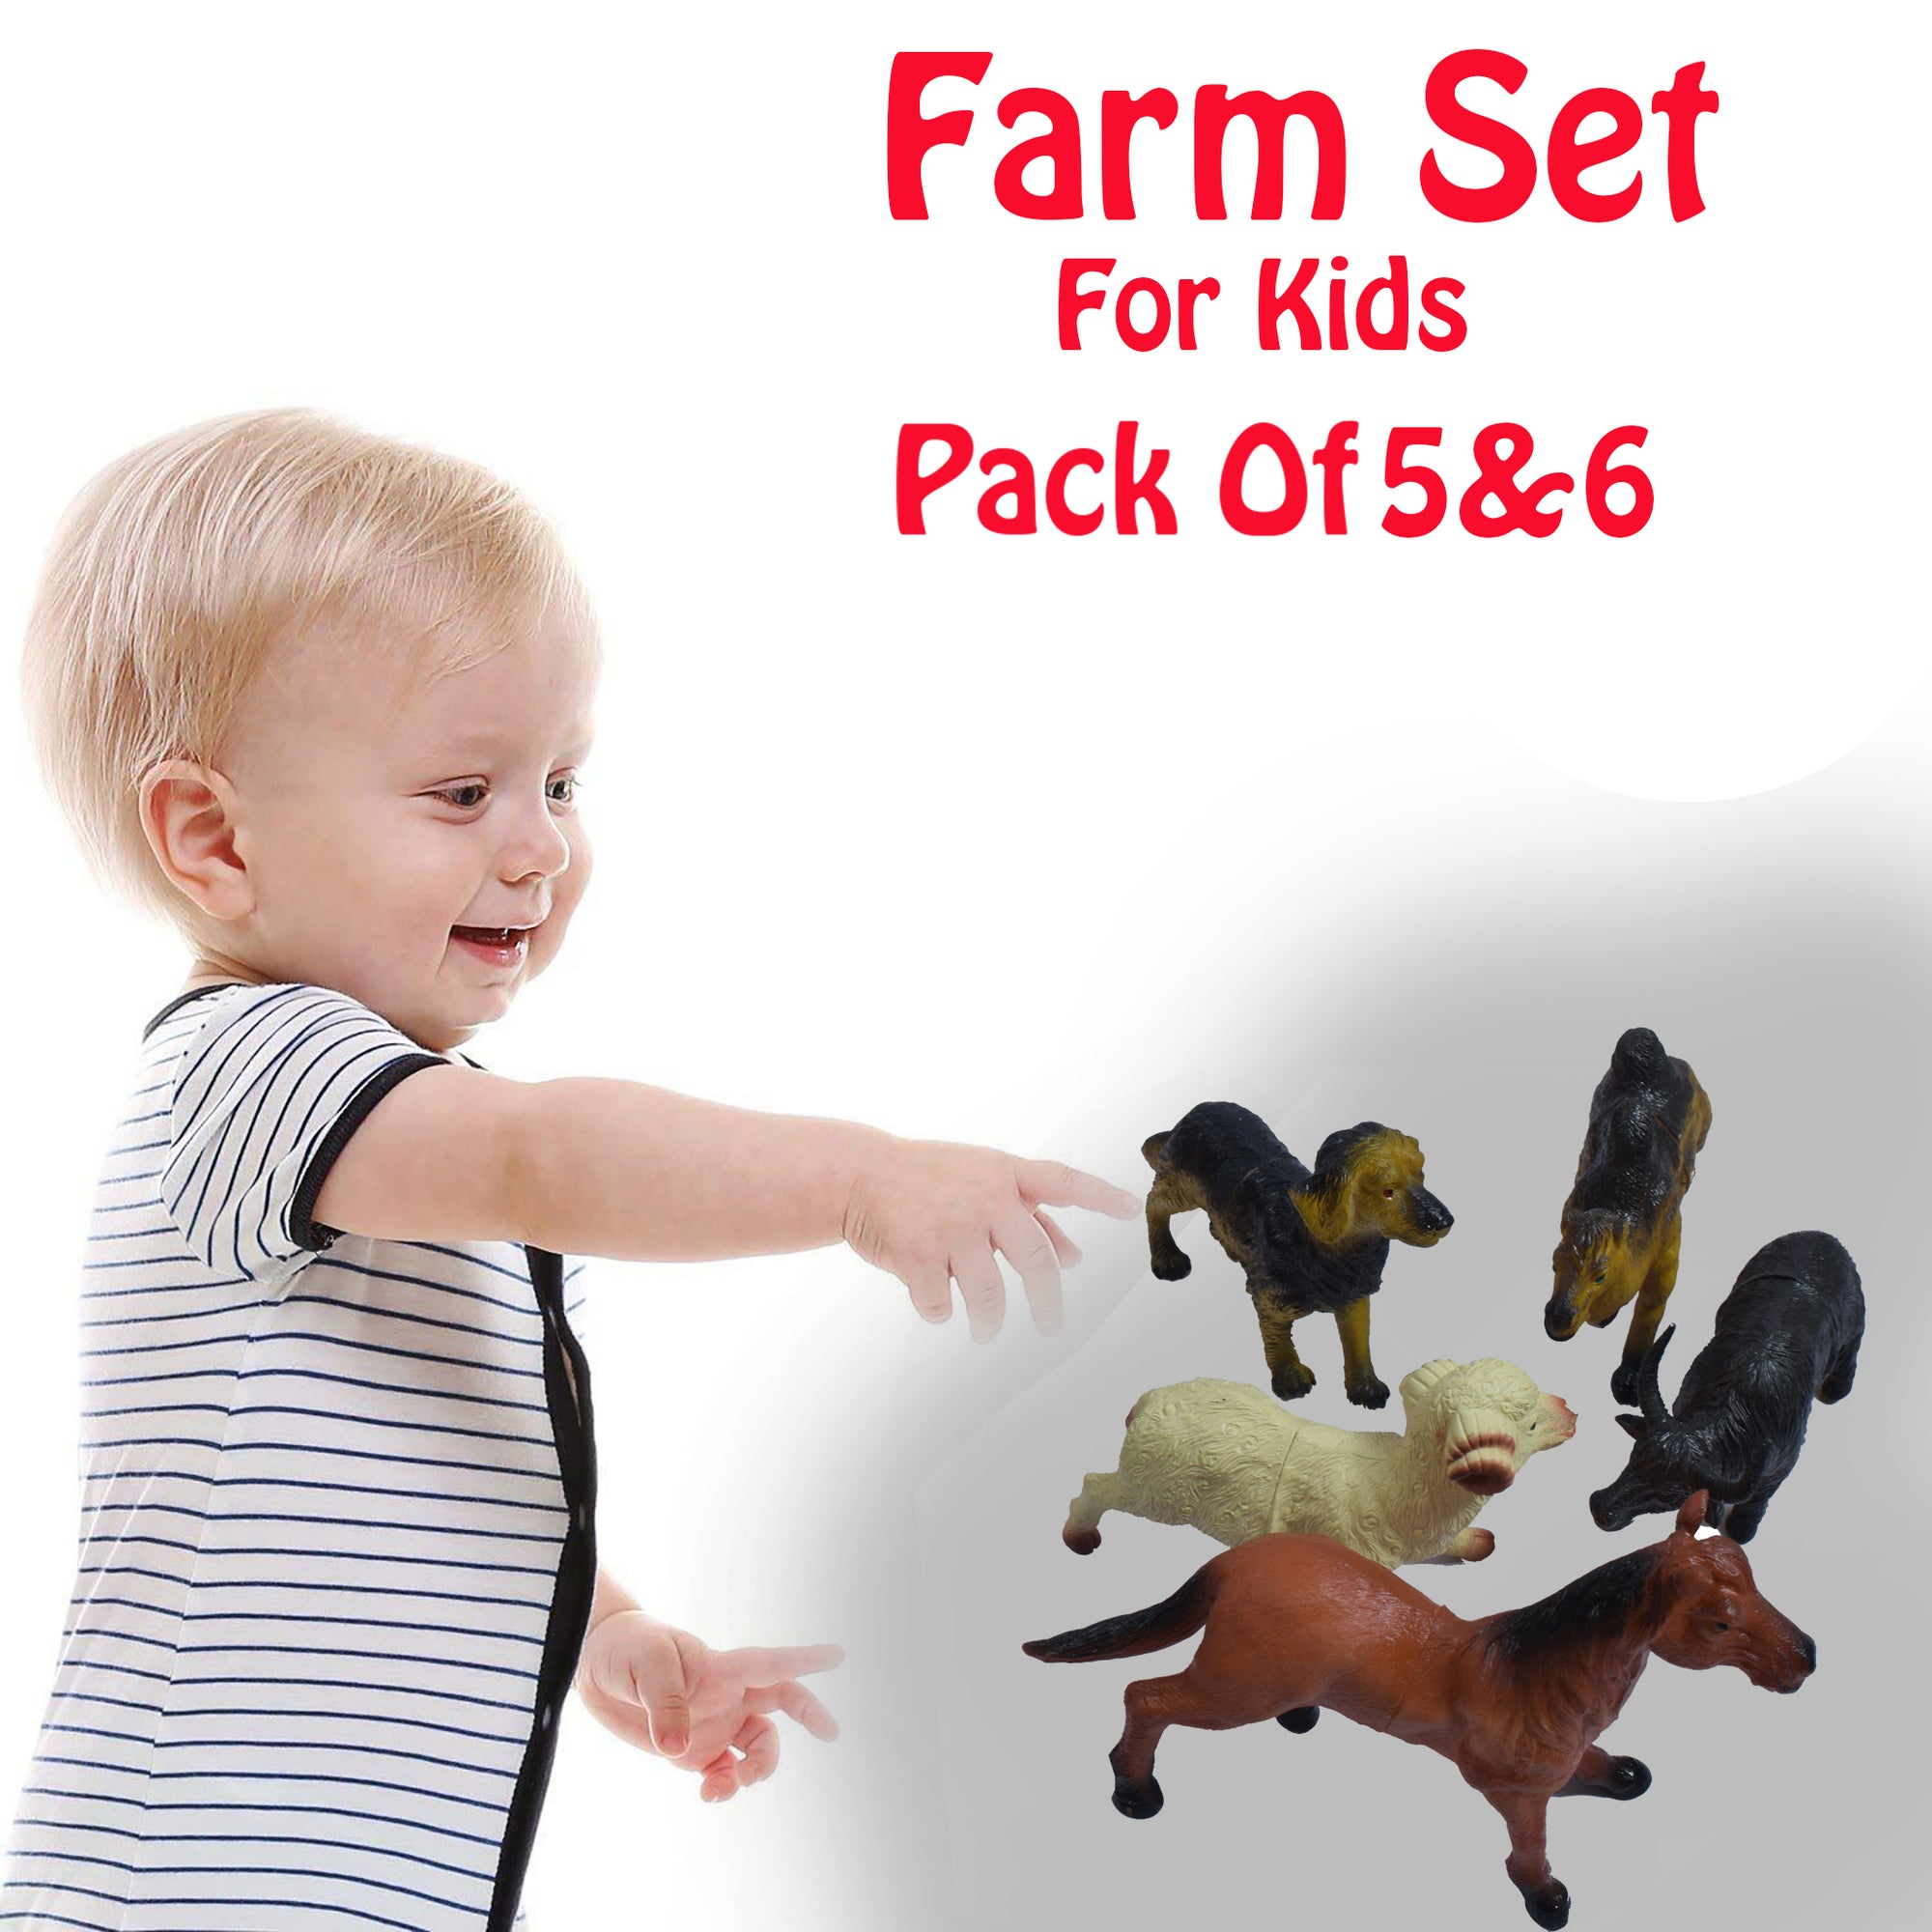 Pack Of 5 & 6 Farm Animals Action Figures For Kids -SK0380